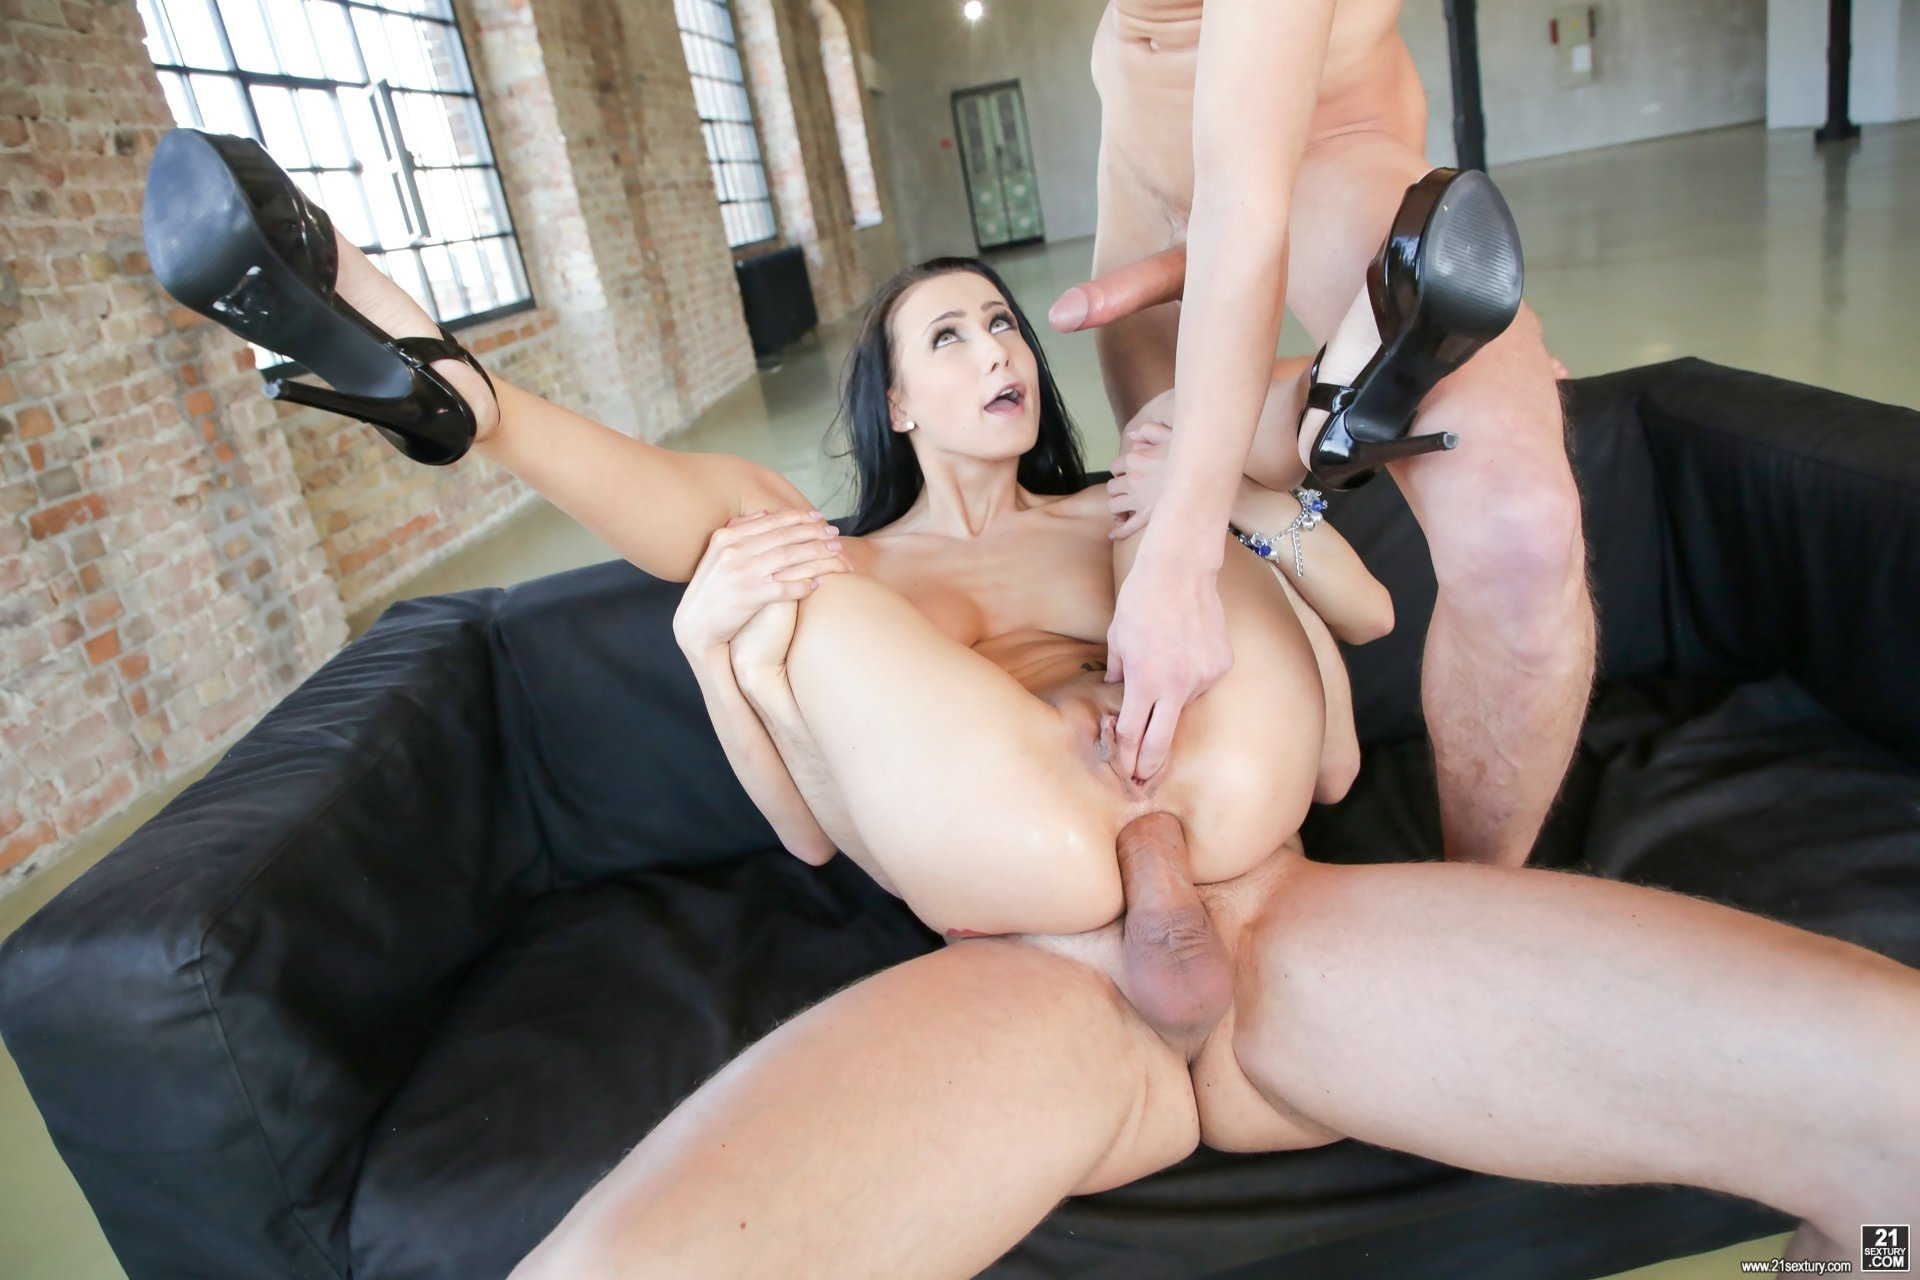 Sister threesome hd Foreplay between husband and wife